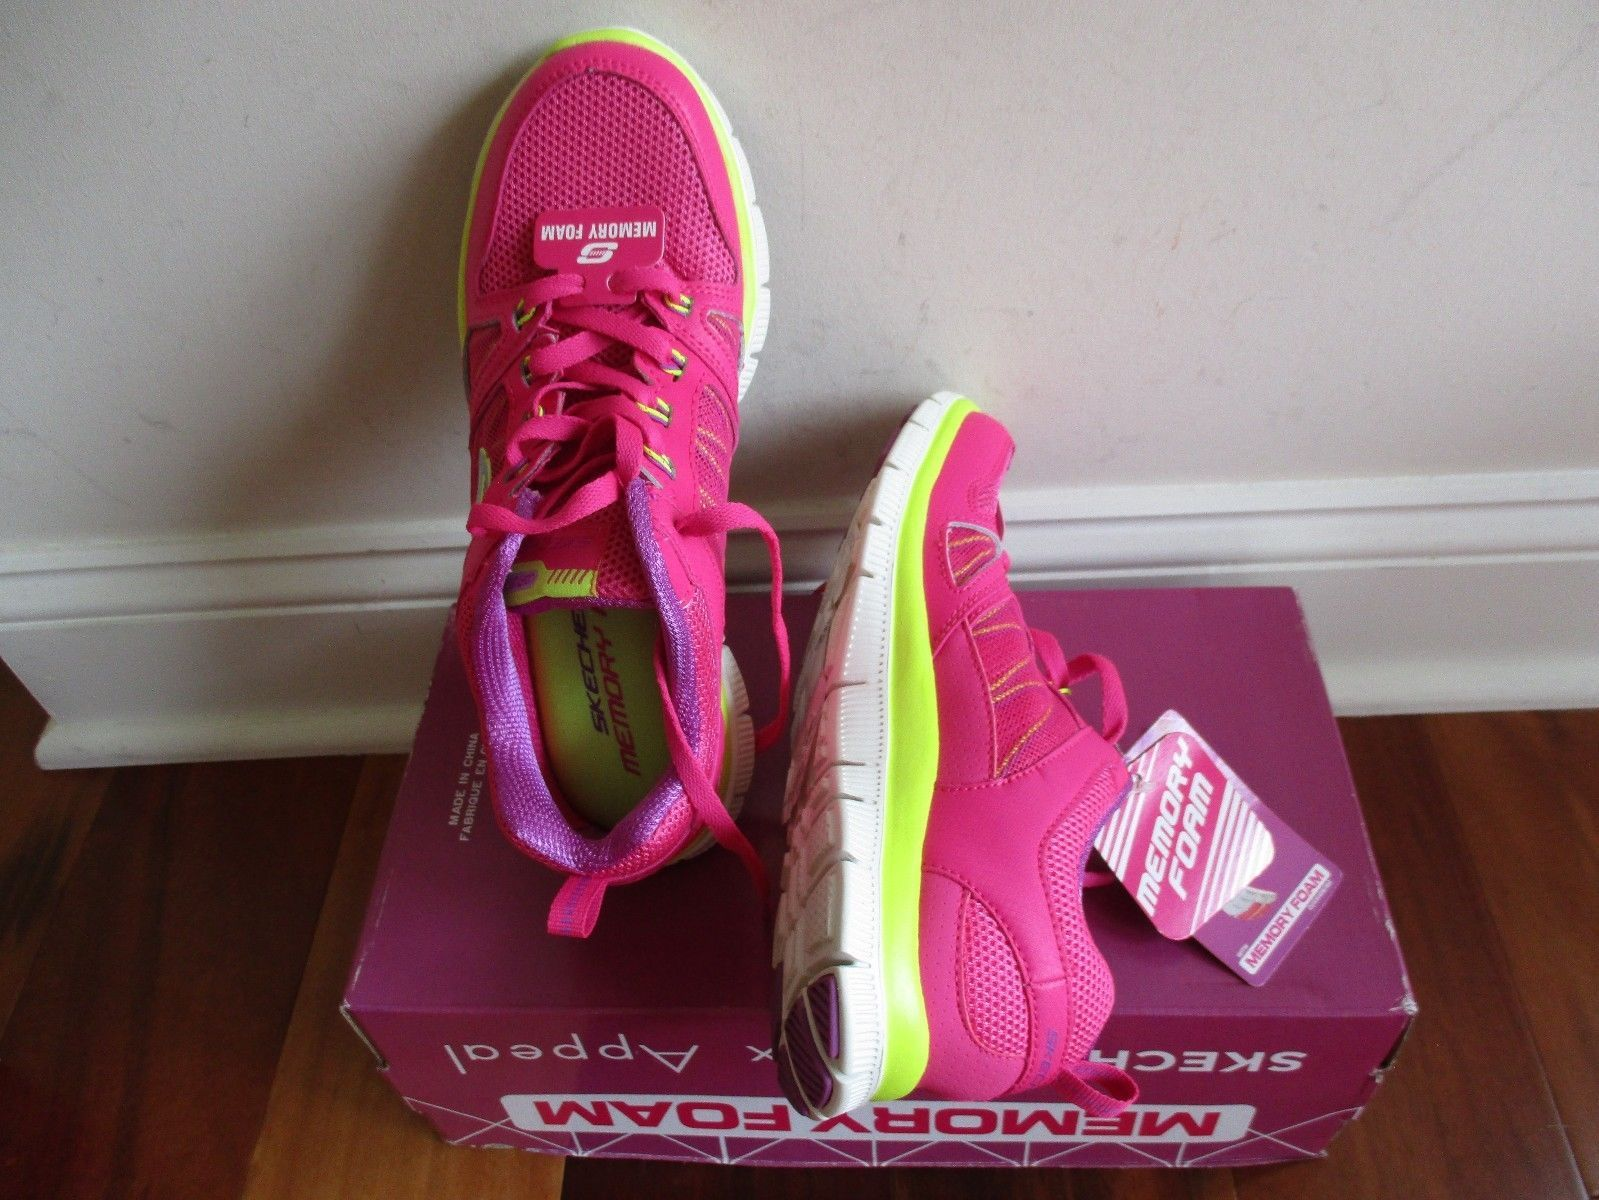 BNIB Skechers Flex Appeal - Spring Fever Womens' Athletic Shoes, ships w/o box image 11